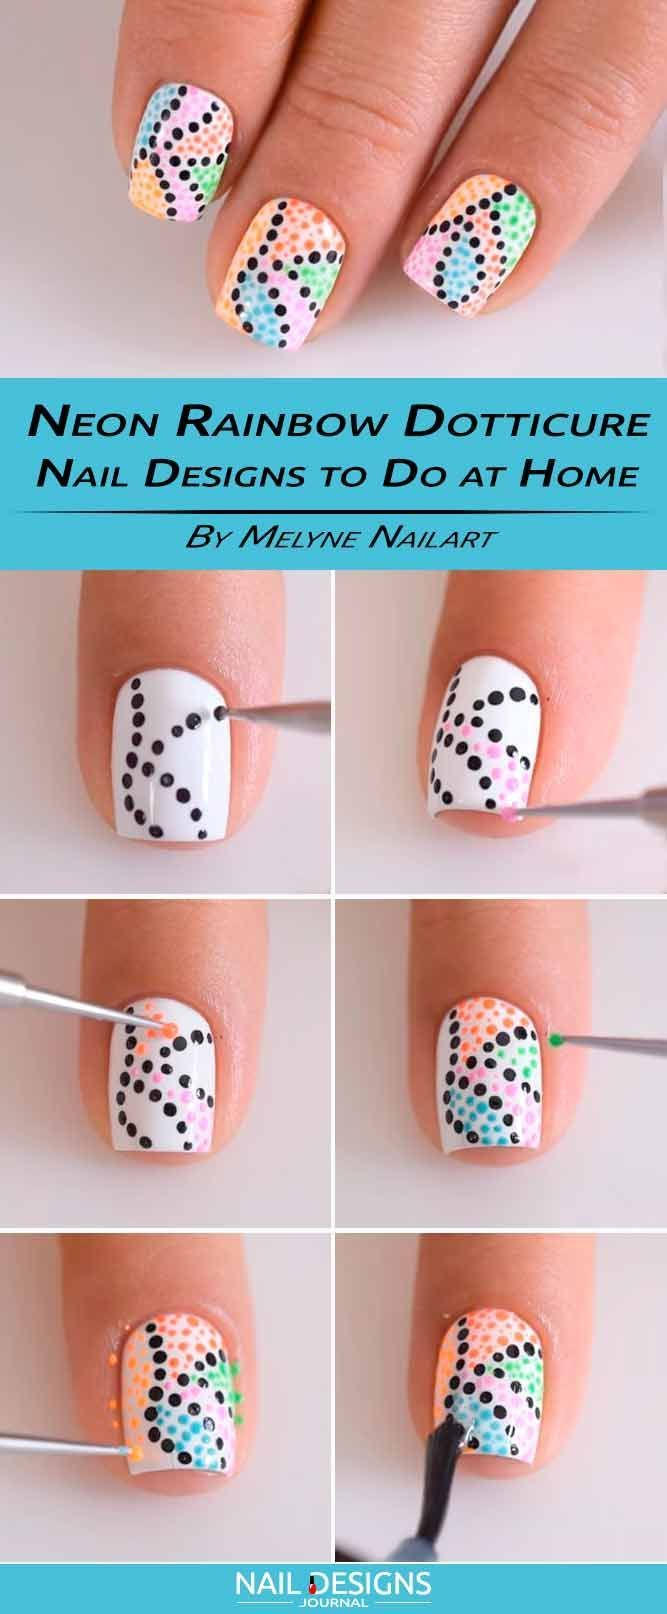 How To Do Nail Designs At Home See More Https Naildesignsjournal Com How To Do Nail Designs Nails Diy Nail Designs Nails Nail Designs